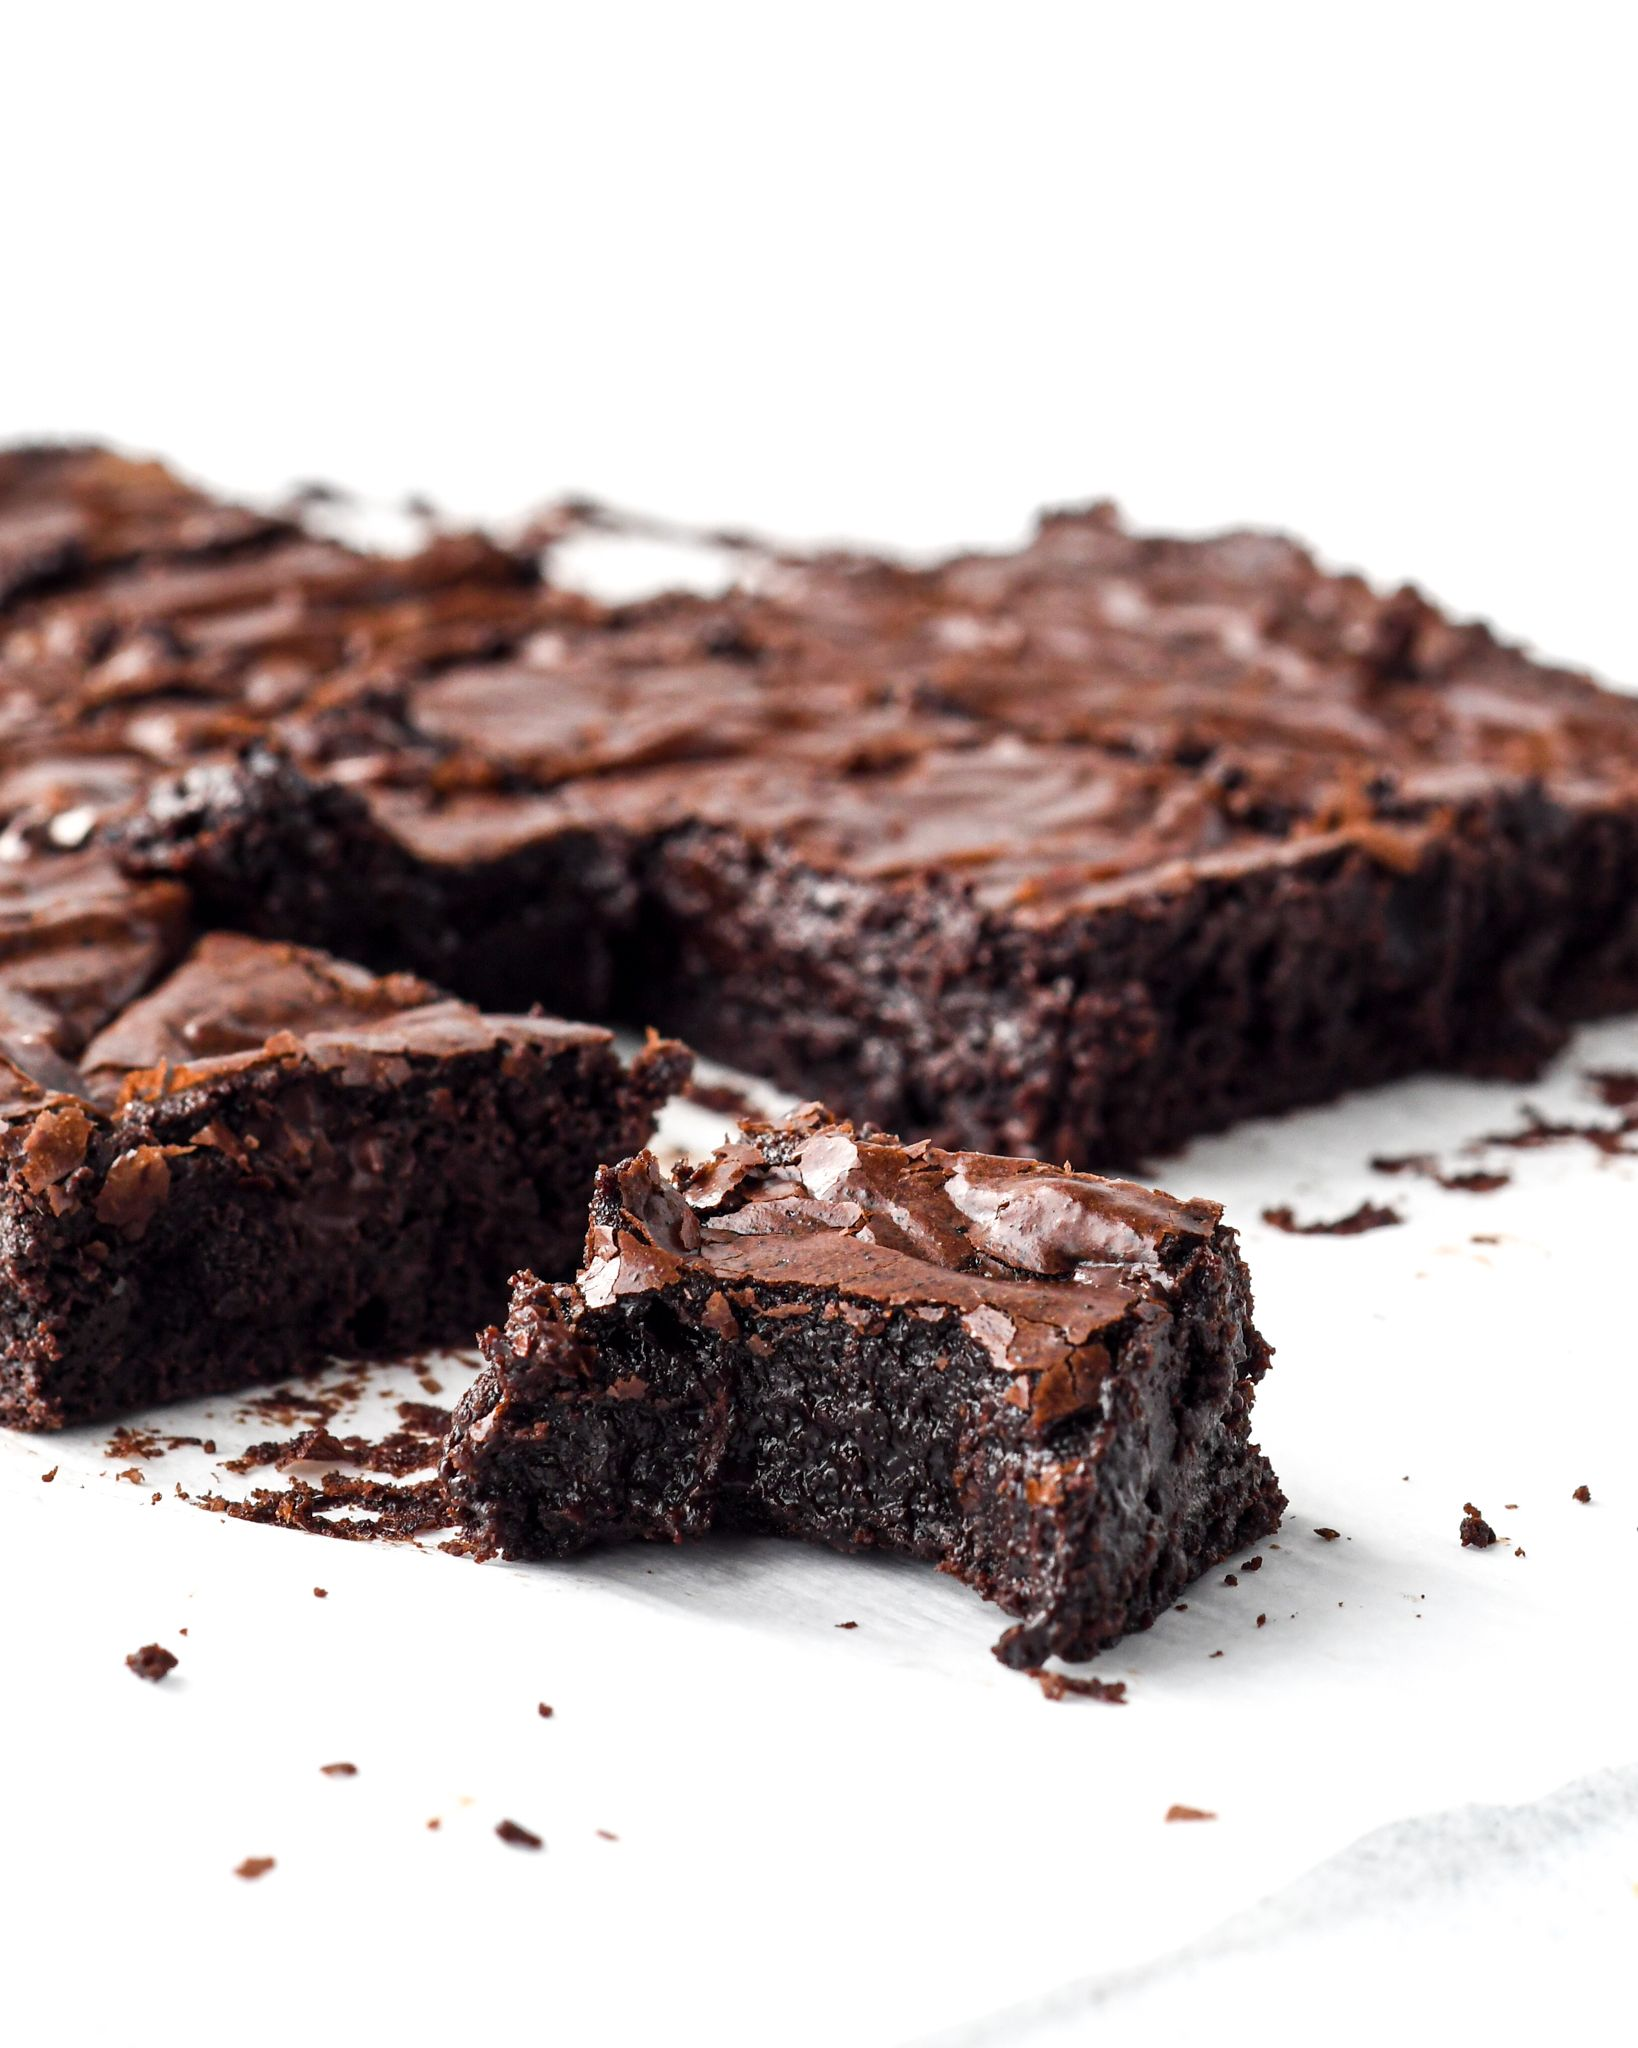 Always Shiny Top Thick Cocoa Brownies Buttermilk In 2020 Cocoa Brownies Cocoa Recipes Brownie Ingredients